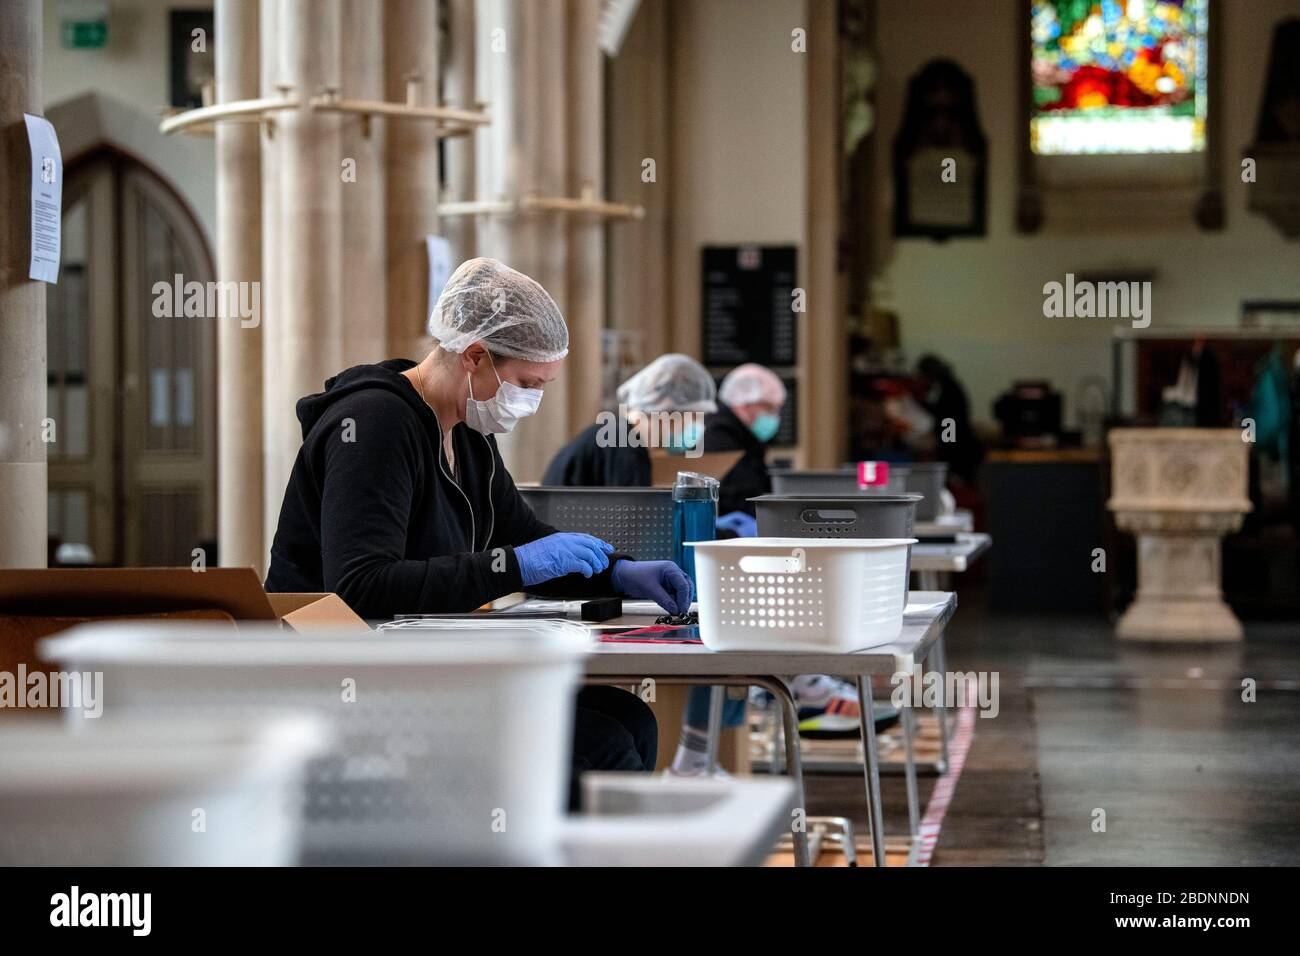 St Michael's Without Church in Bath, has opened its doors and transformed into a makeshift PPE mask production line during the Coronavirus outbreak. Stock Photo